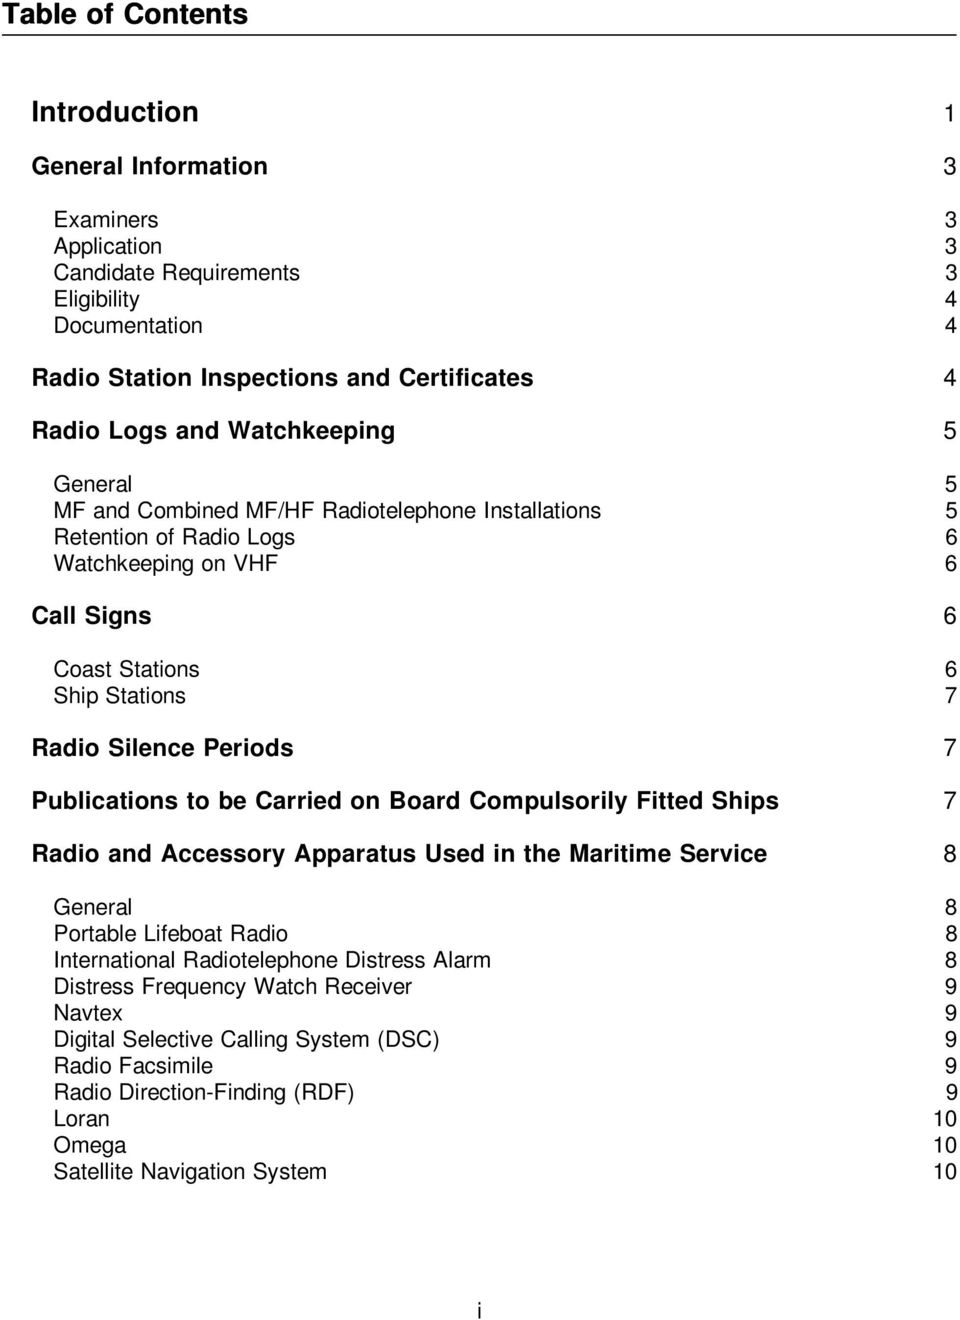 Study Guide for the General Operator's Certificate - PDF